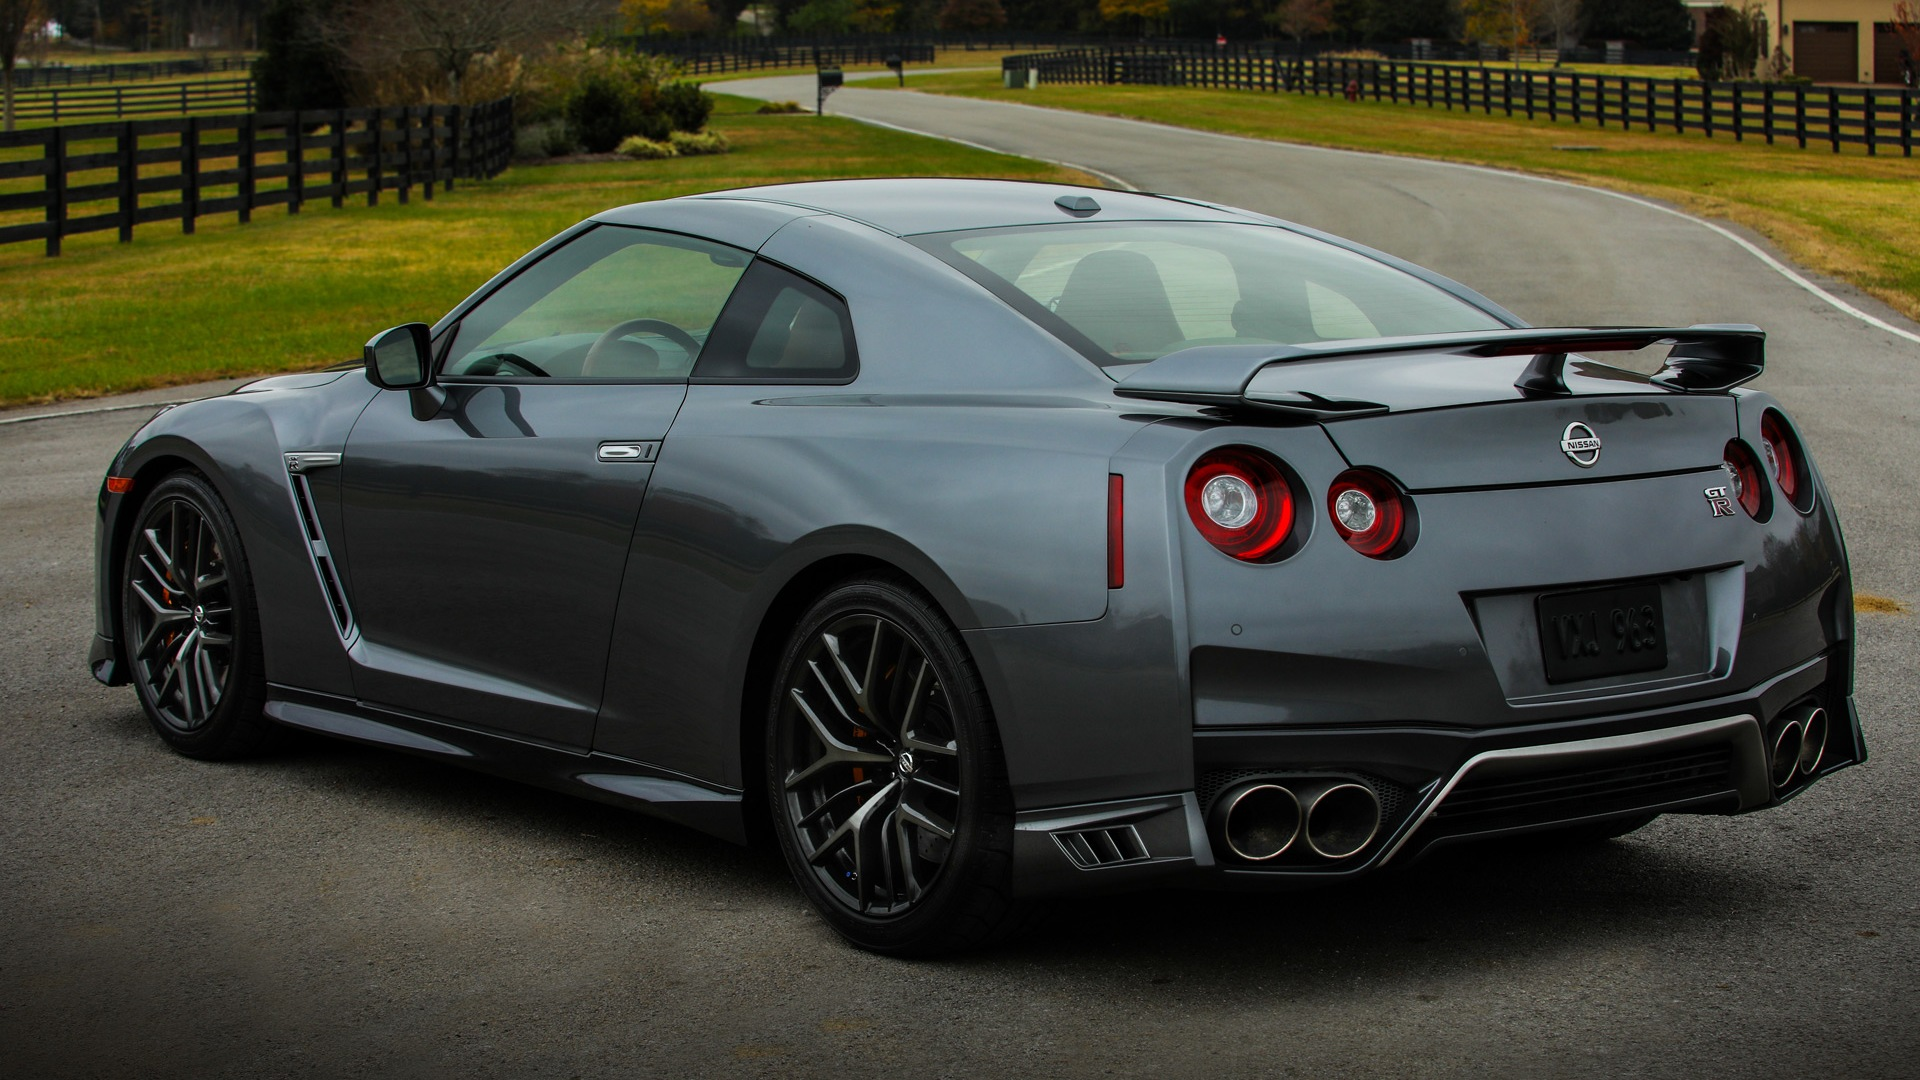 Used Nissan Gt-r for Sale Awesome 2018 Nissan Gt R Given $10 000 Price Cut